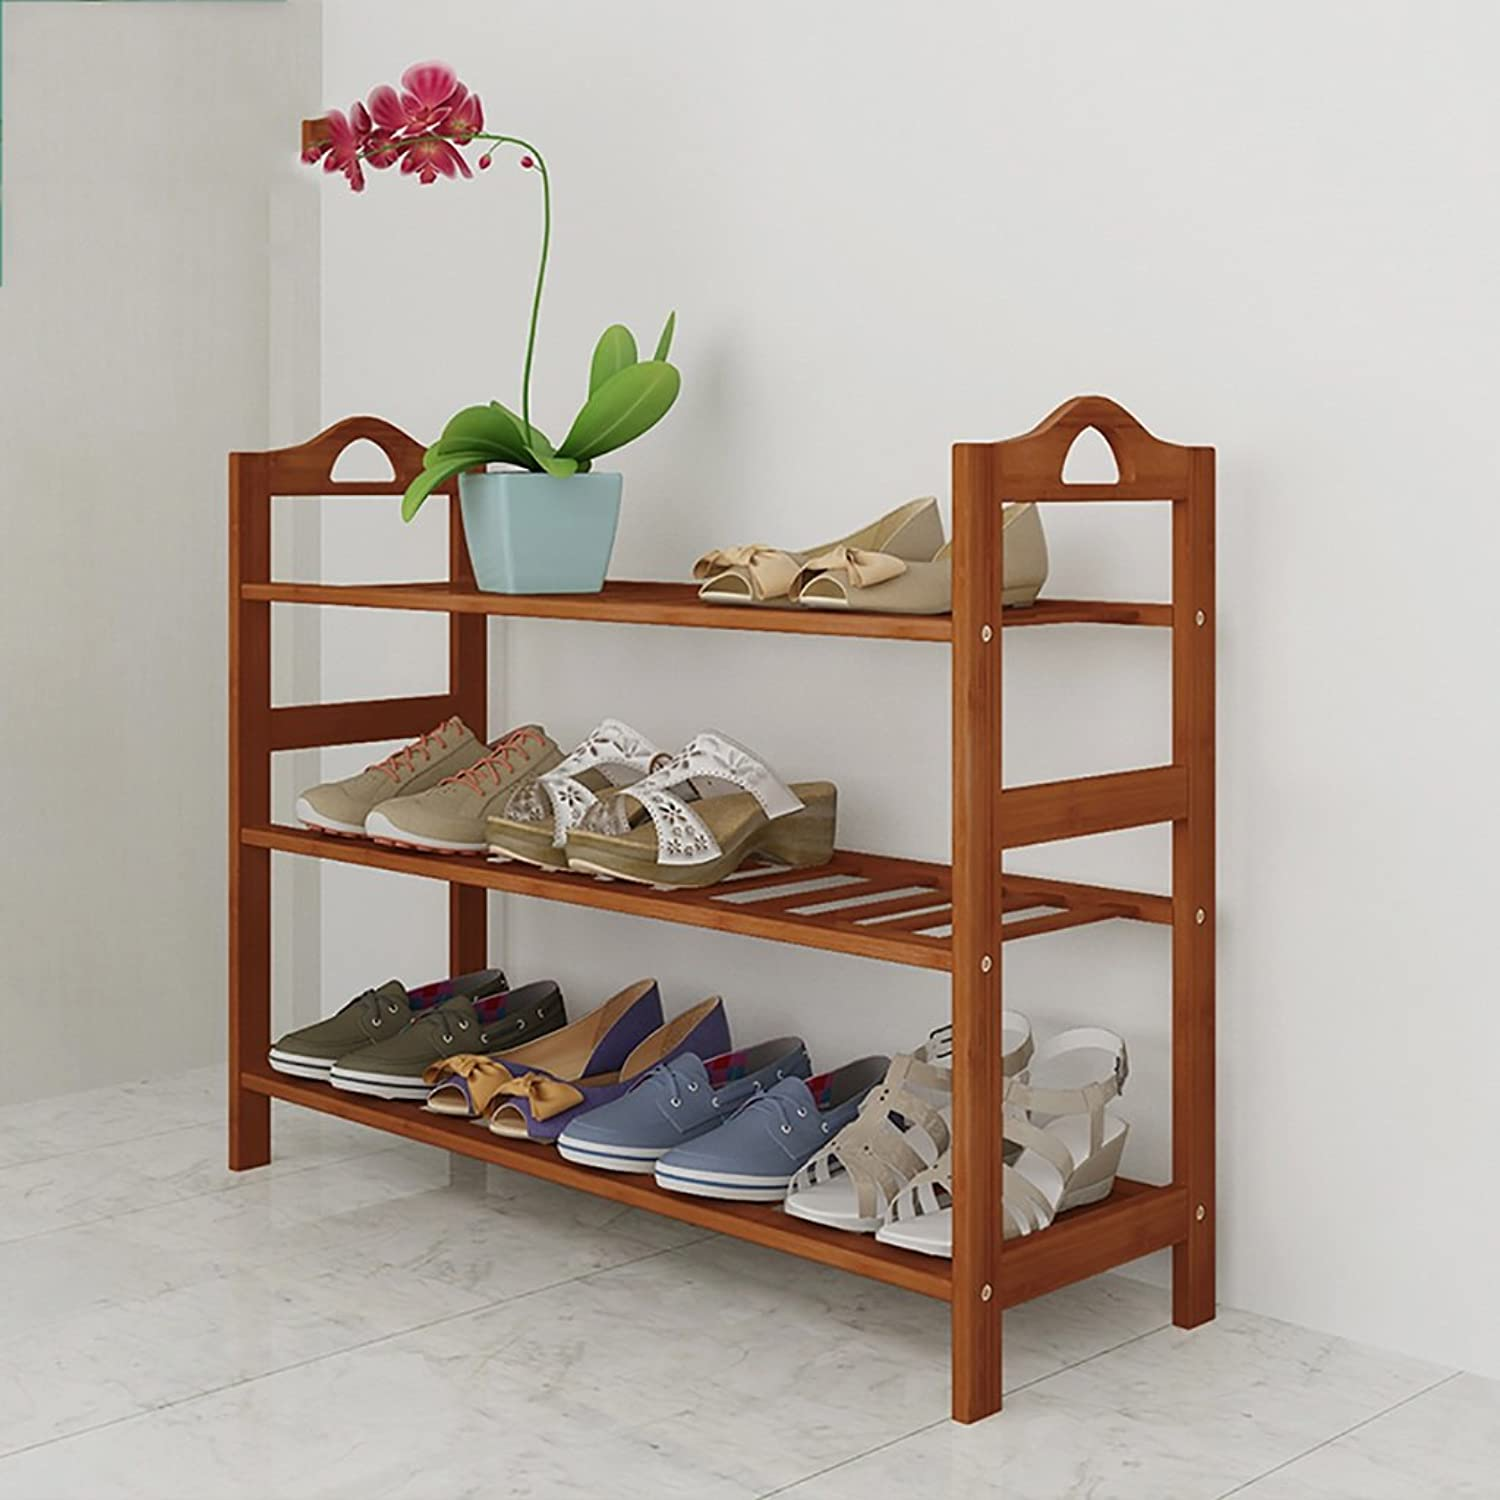 shoes Bench Organizing Rack shoes Rack Bamboo Shelves Multi - Layer dust - Proof Solid Wood shoes Rack Assembly Economical Shelves Home Living Room shoes Cabinet (color   A, Size   67cm)